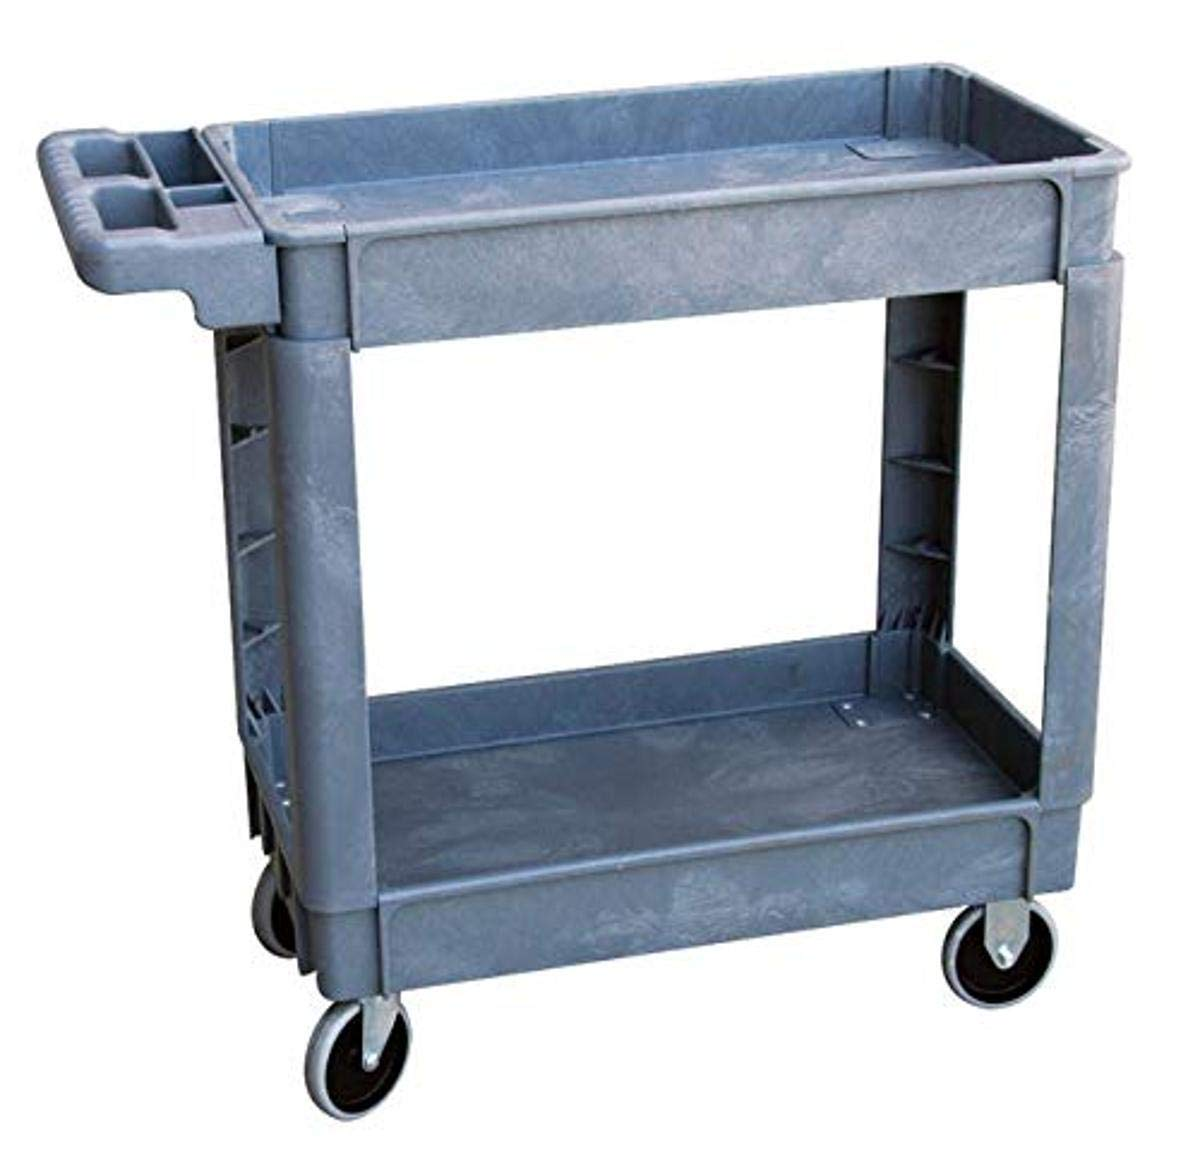 School Specialty 2-Shelves Utility Cart, 17 W X 31 D X 33 H in, 500 lb, High Density Thermoplastic, 4 Wheel